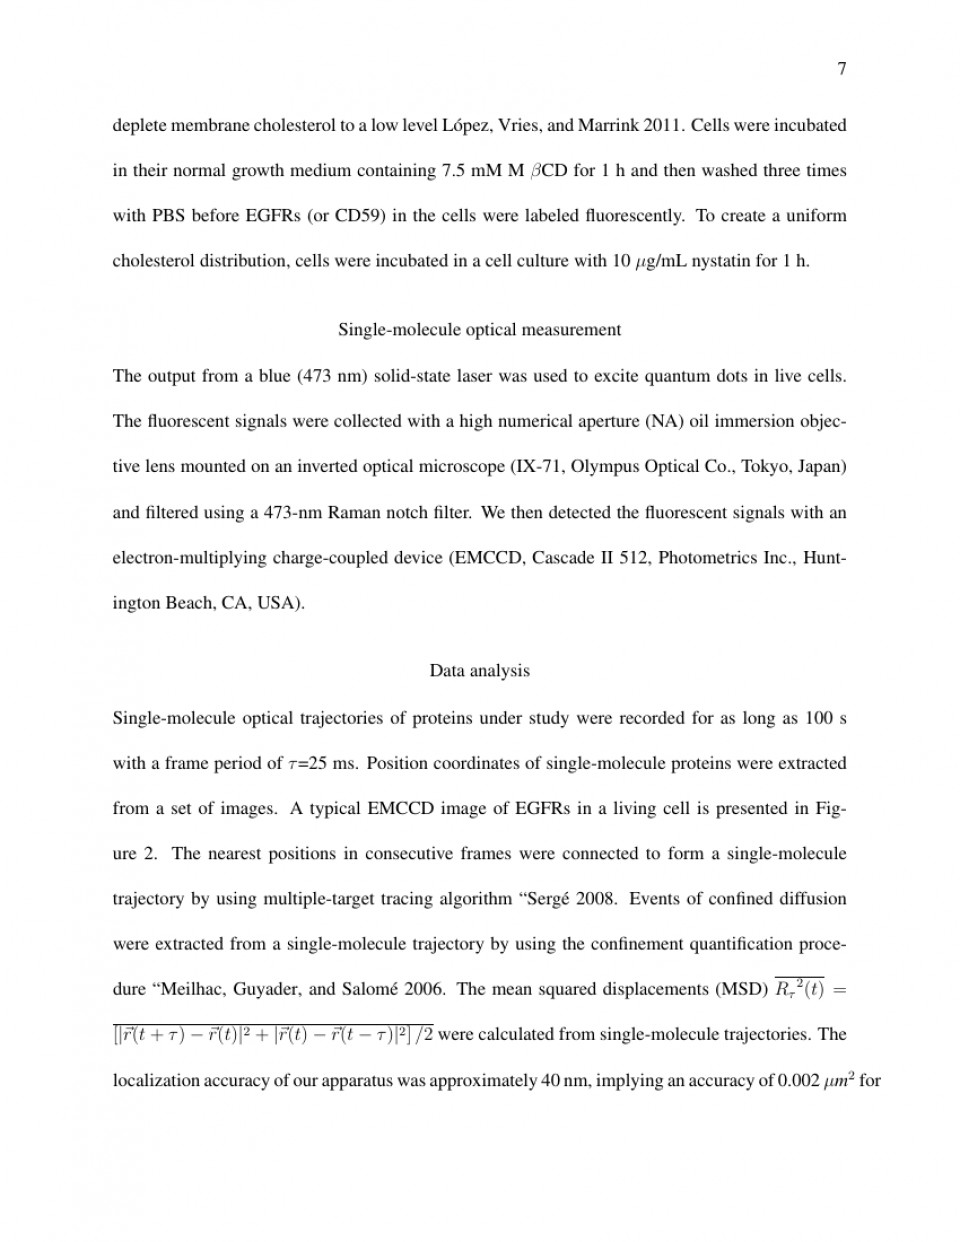 003 Research Paper Article Format Of Awesome Papers Example Apa With Abstract Writing Mla Title Page 960